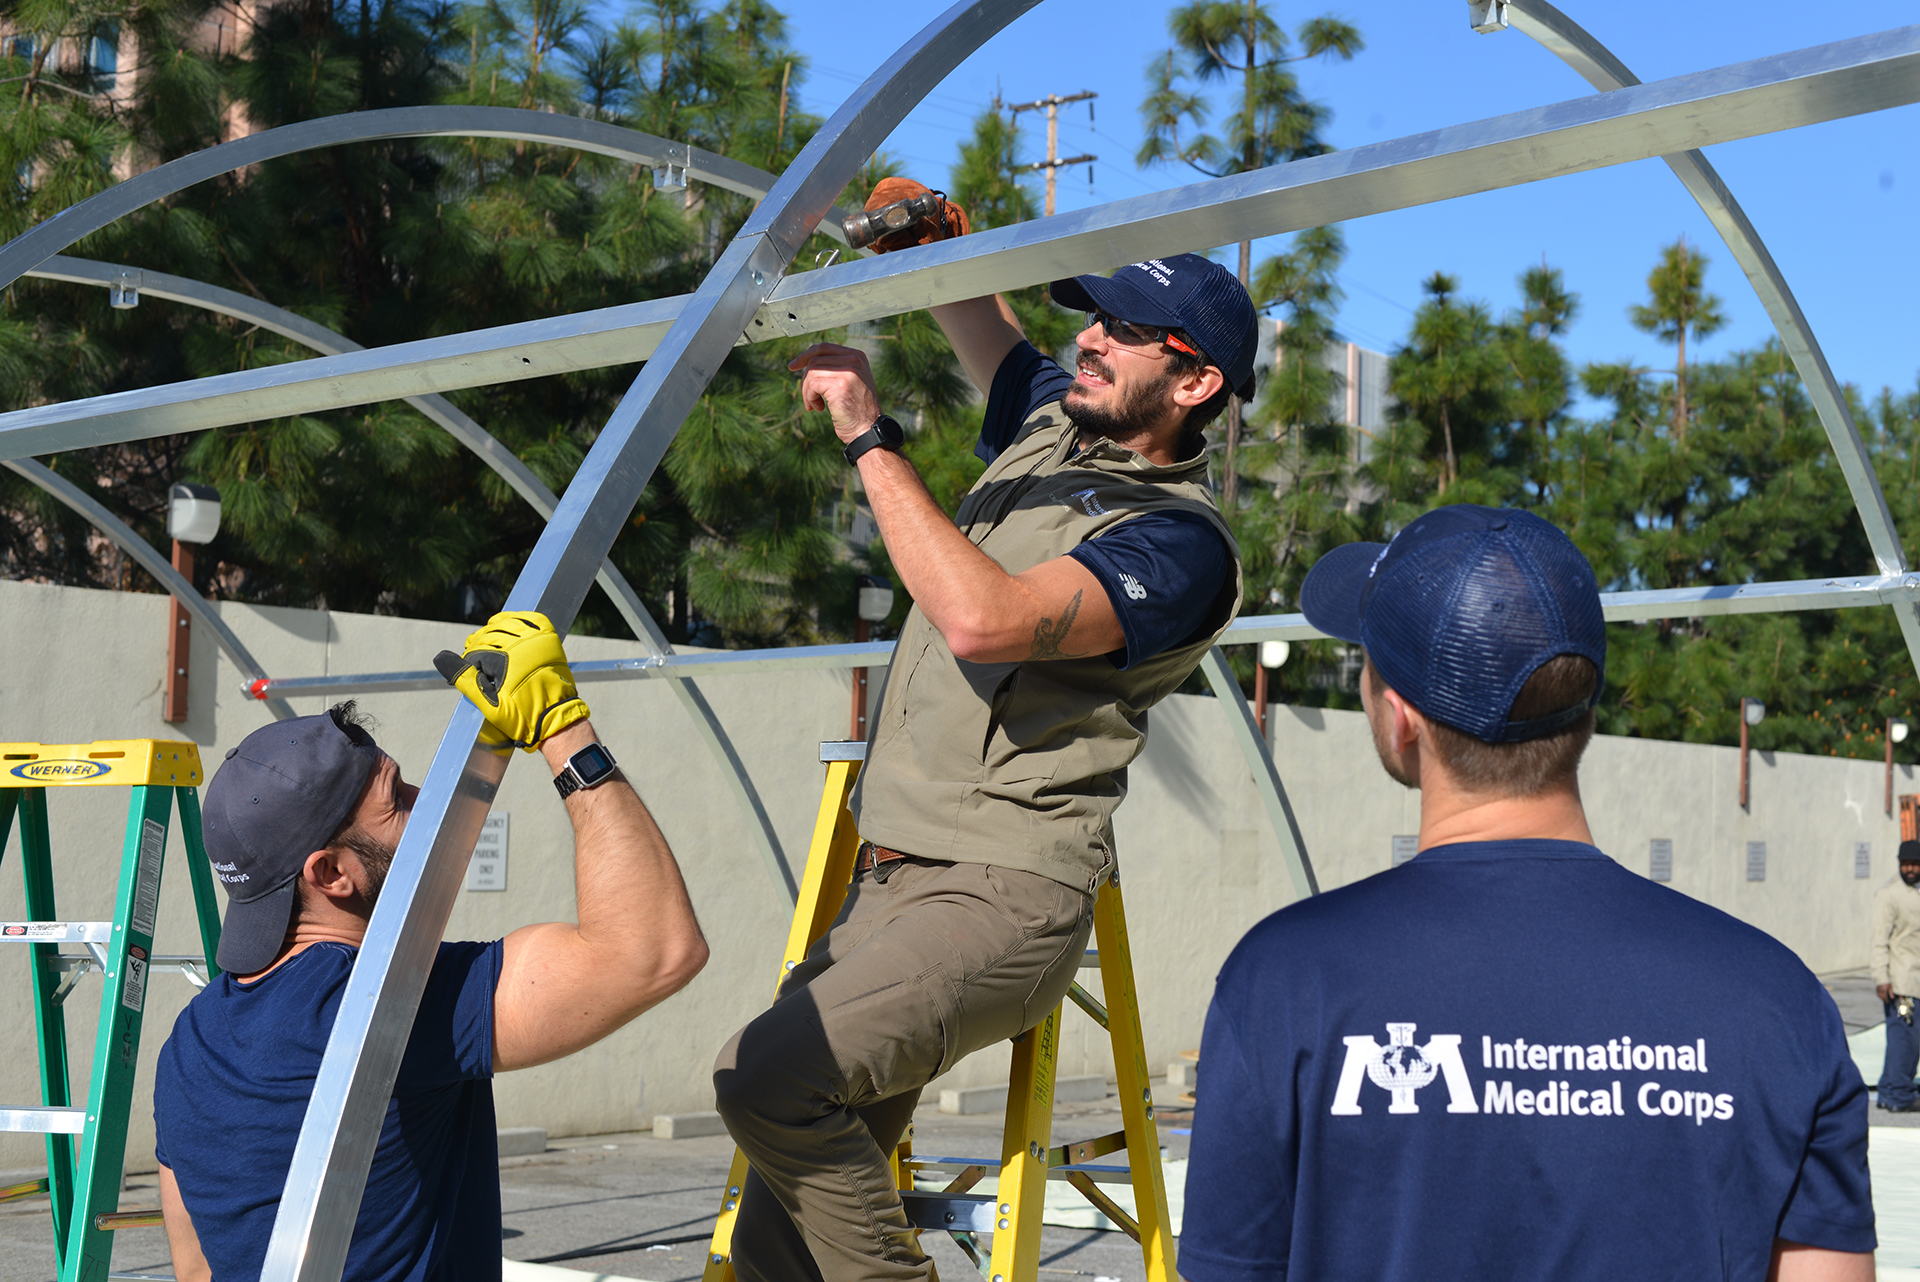 International Medical Corps staff members set up emergency shelters at the Los Angeles County (LAC) + University of Southern California (USC) Medical Center in Los Angeles, CA.